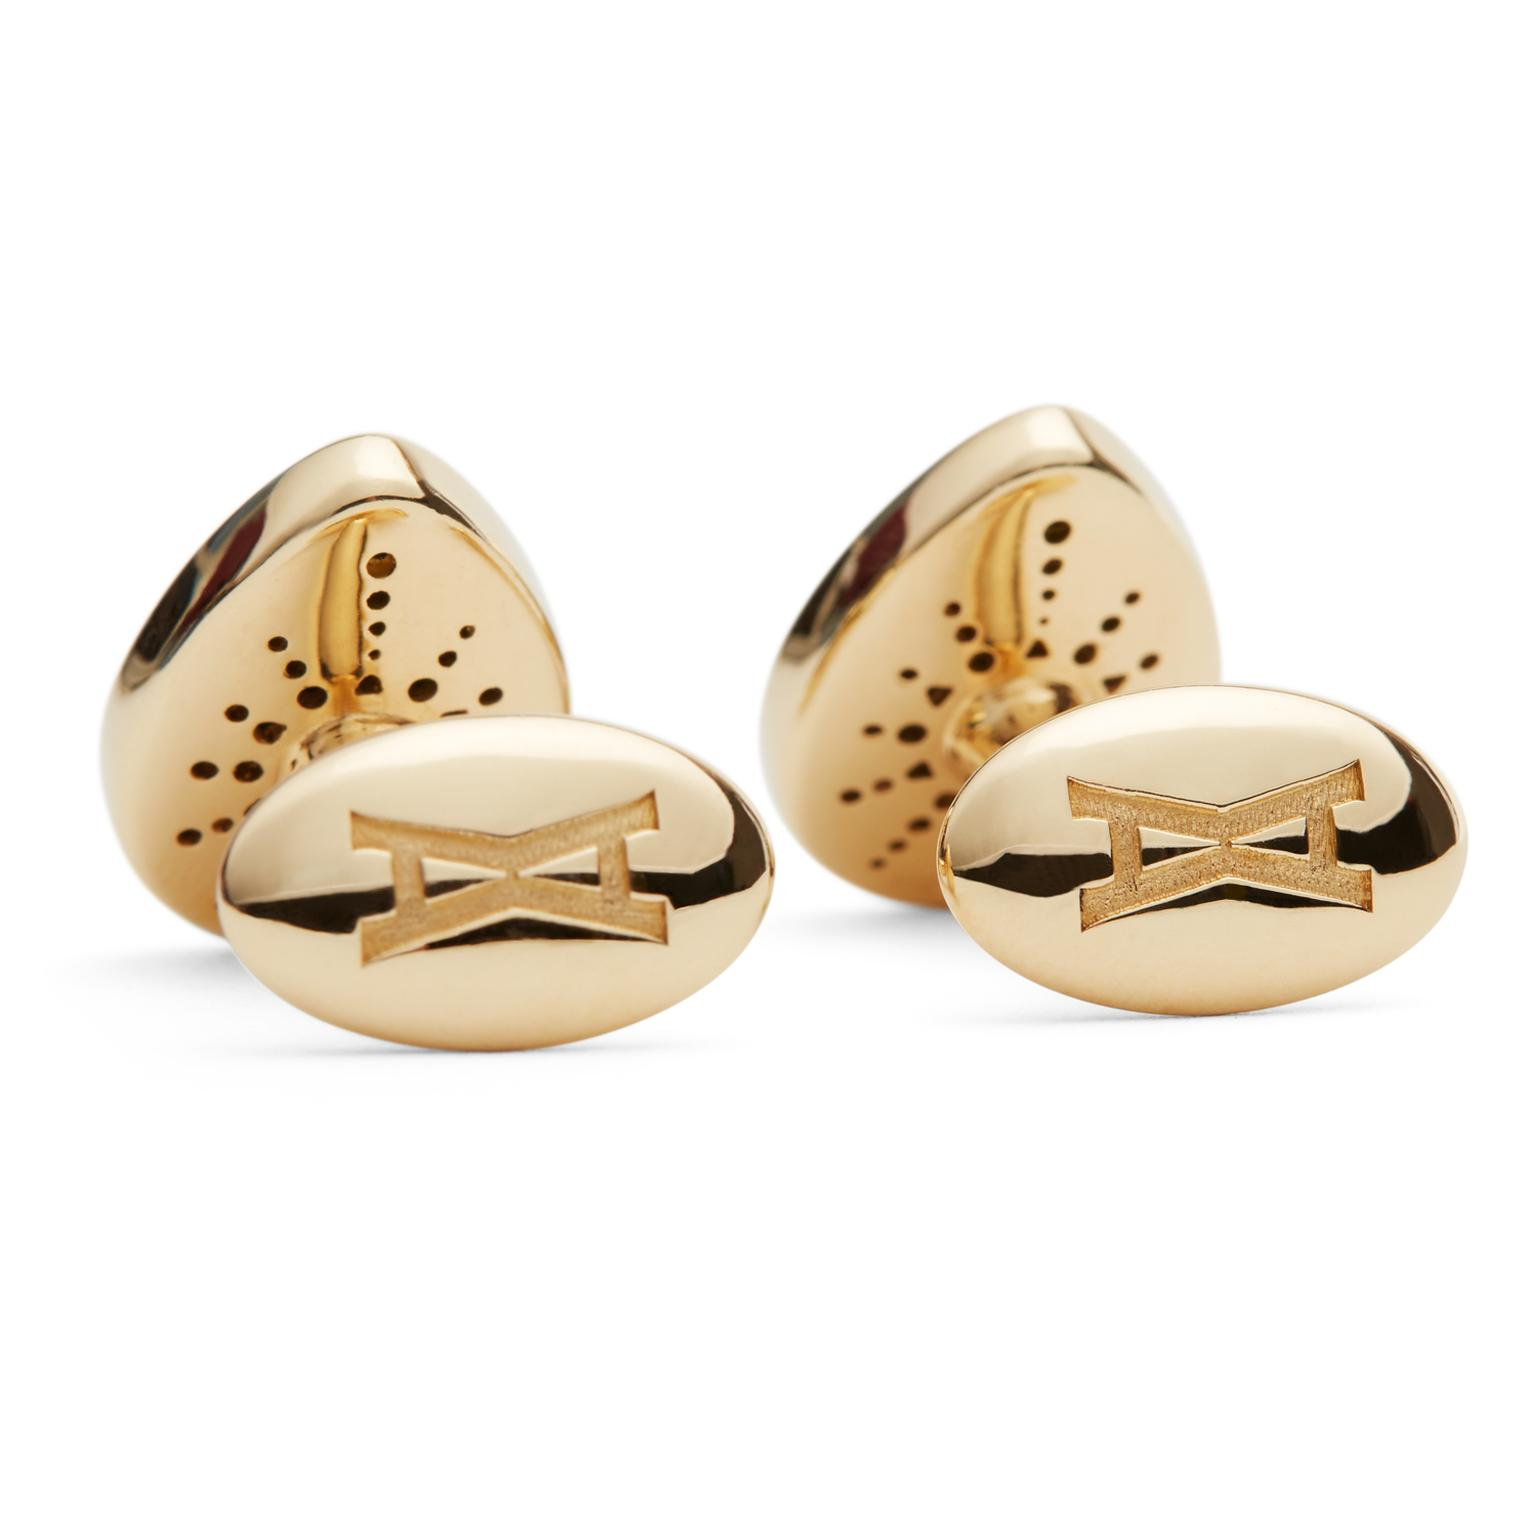 Alina Abegg Cosmic Escape malachite Alien cufflinks from back